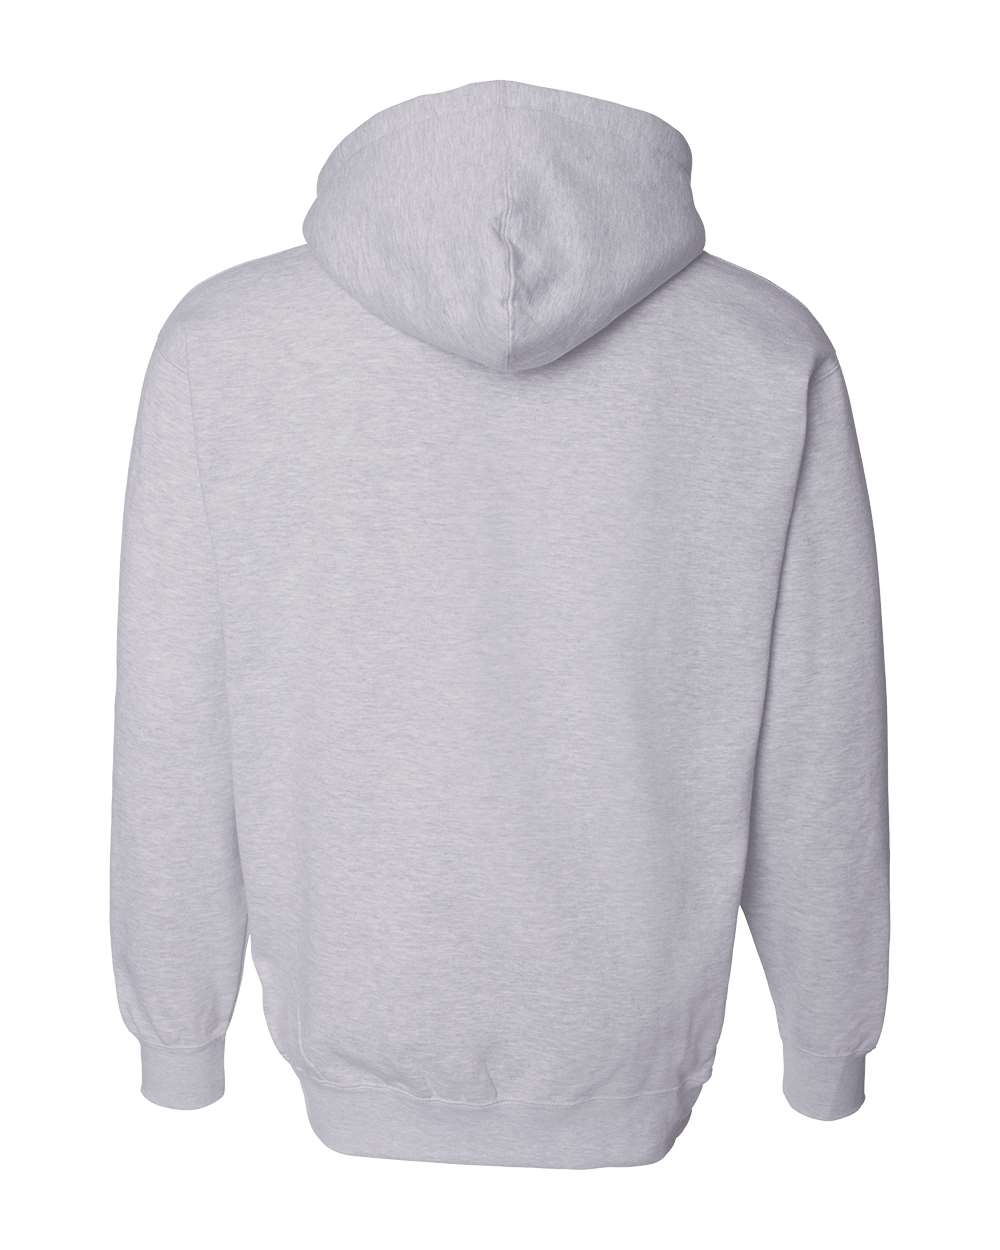 Independent-Trading-Co-Mens-Hooded-Pullover-Sweatshirt-IND4000-up-to-3XL miniature 43